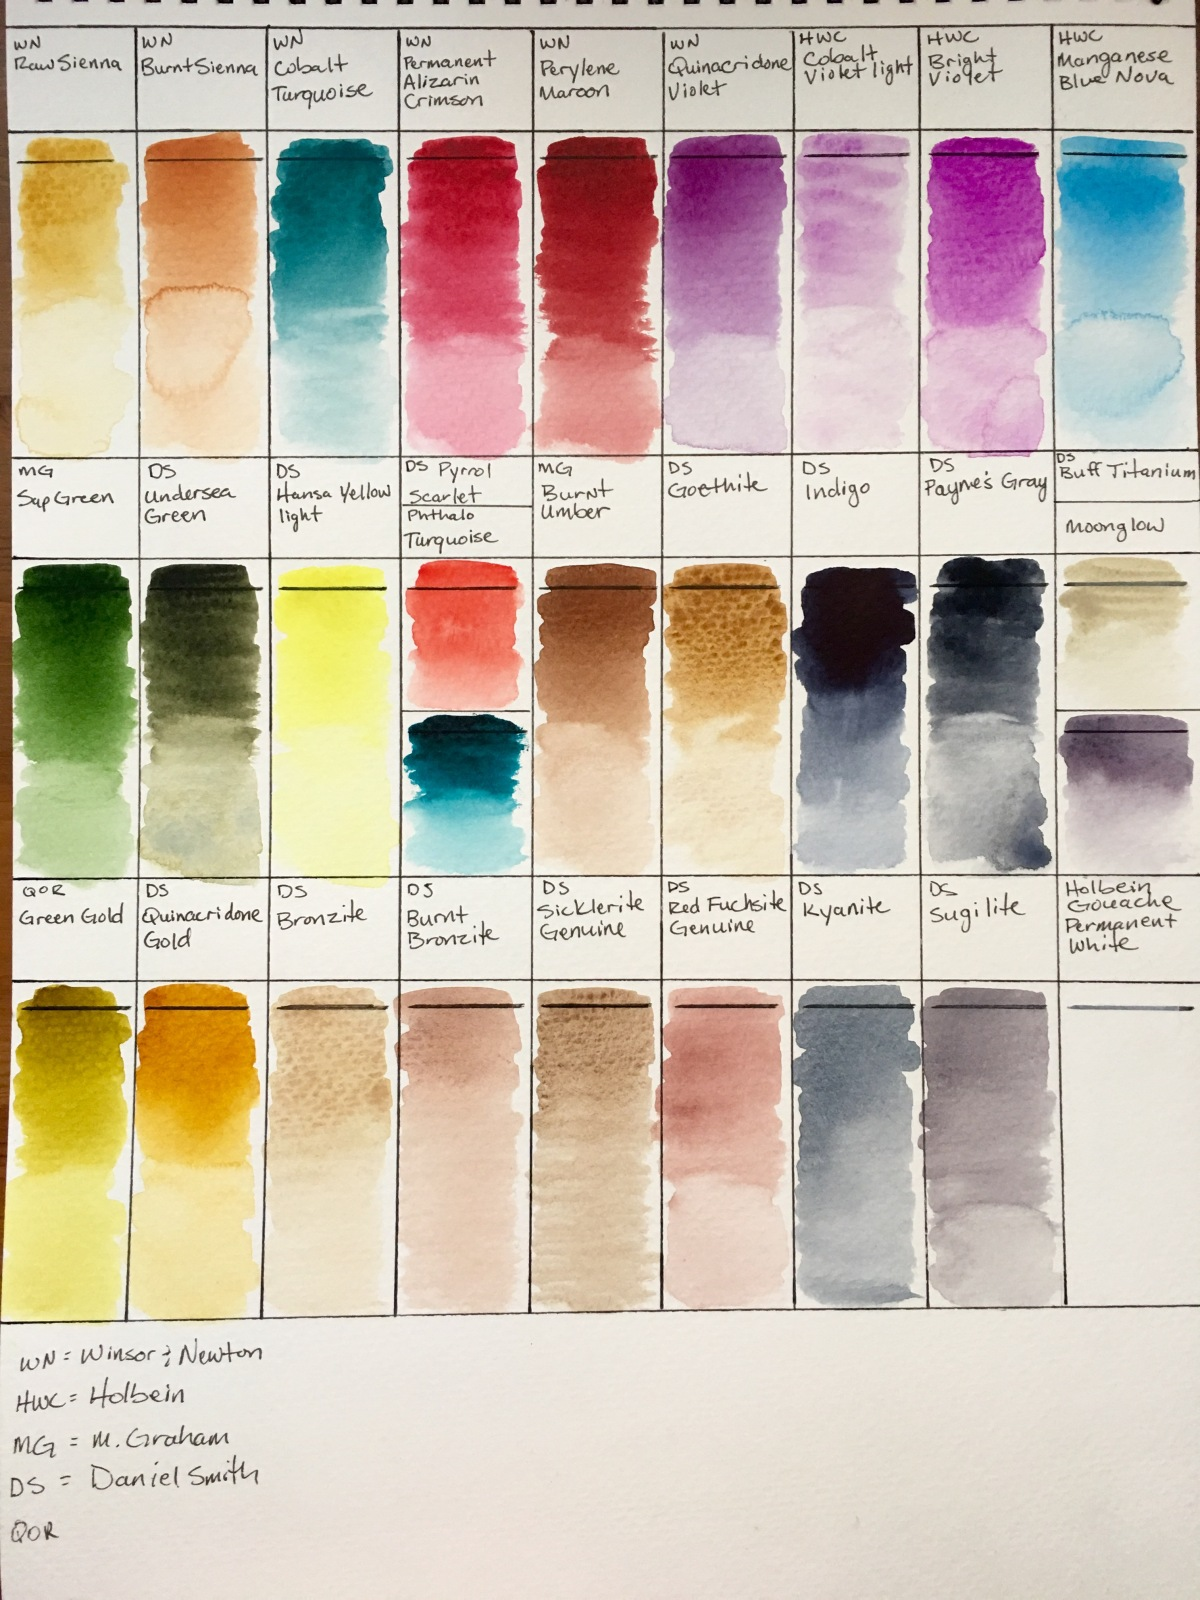 Winsor & Newton, Holbein, Daniel Smith, Qor, M. Graham watercolor swatches for a travel palette